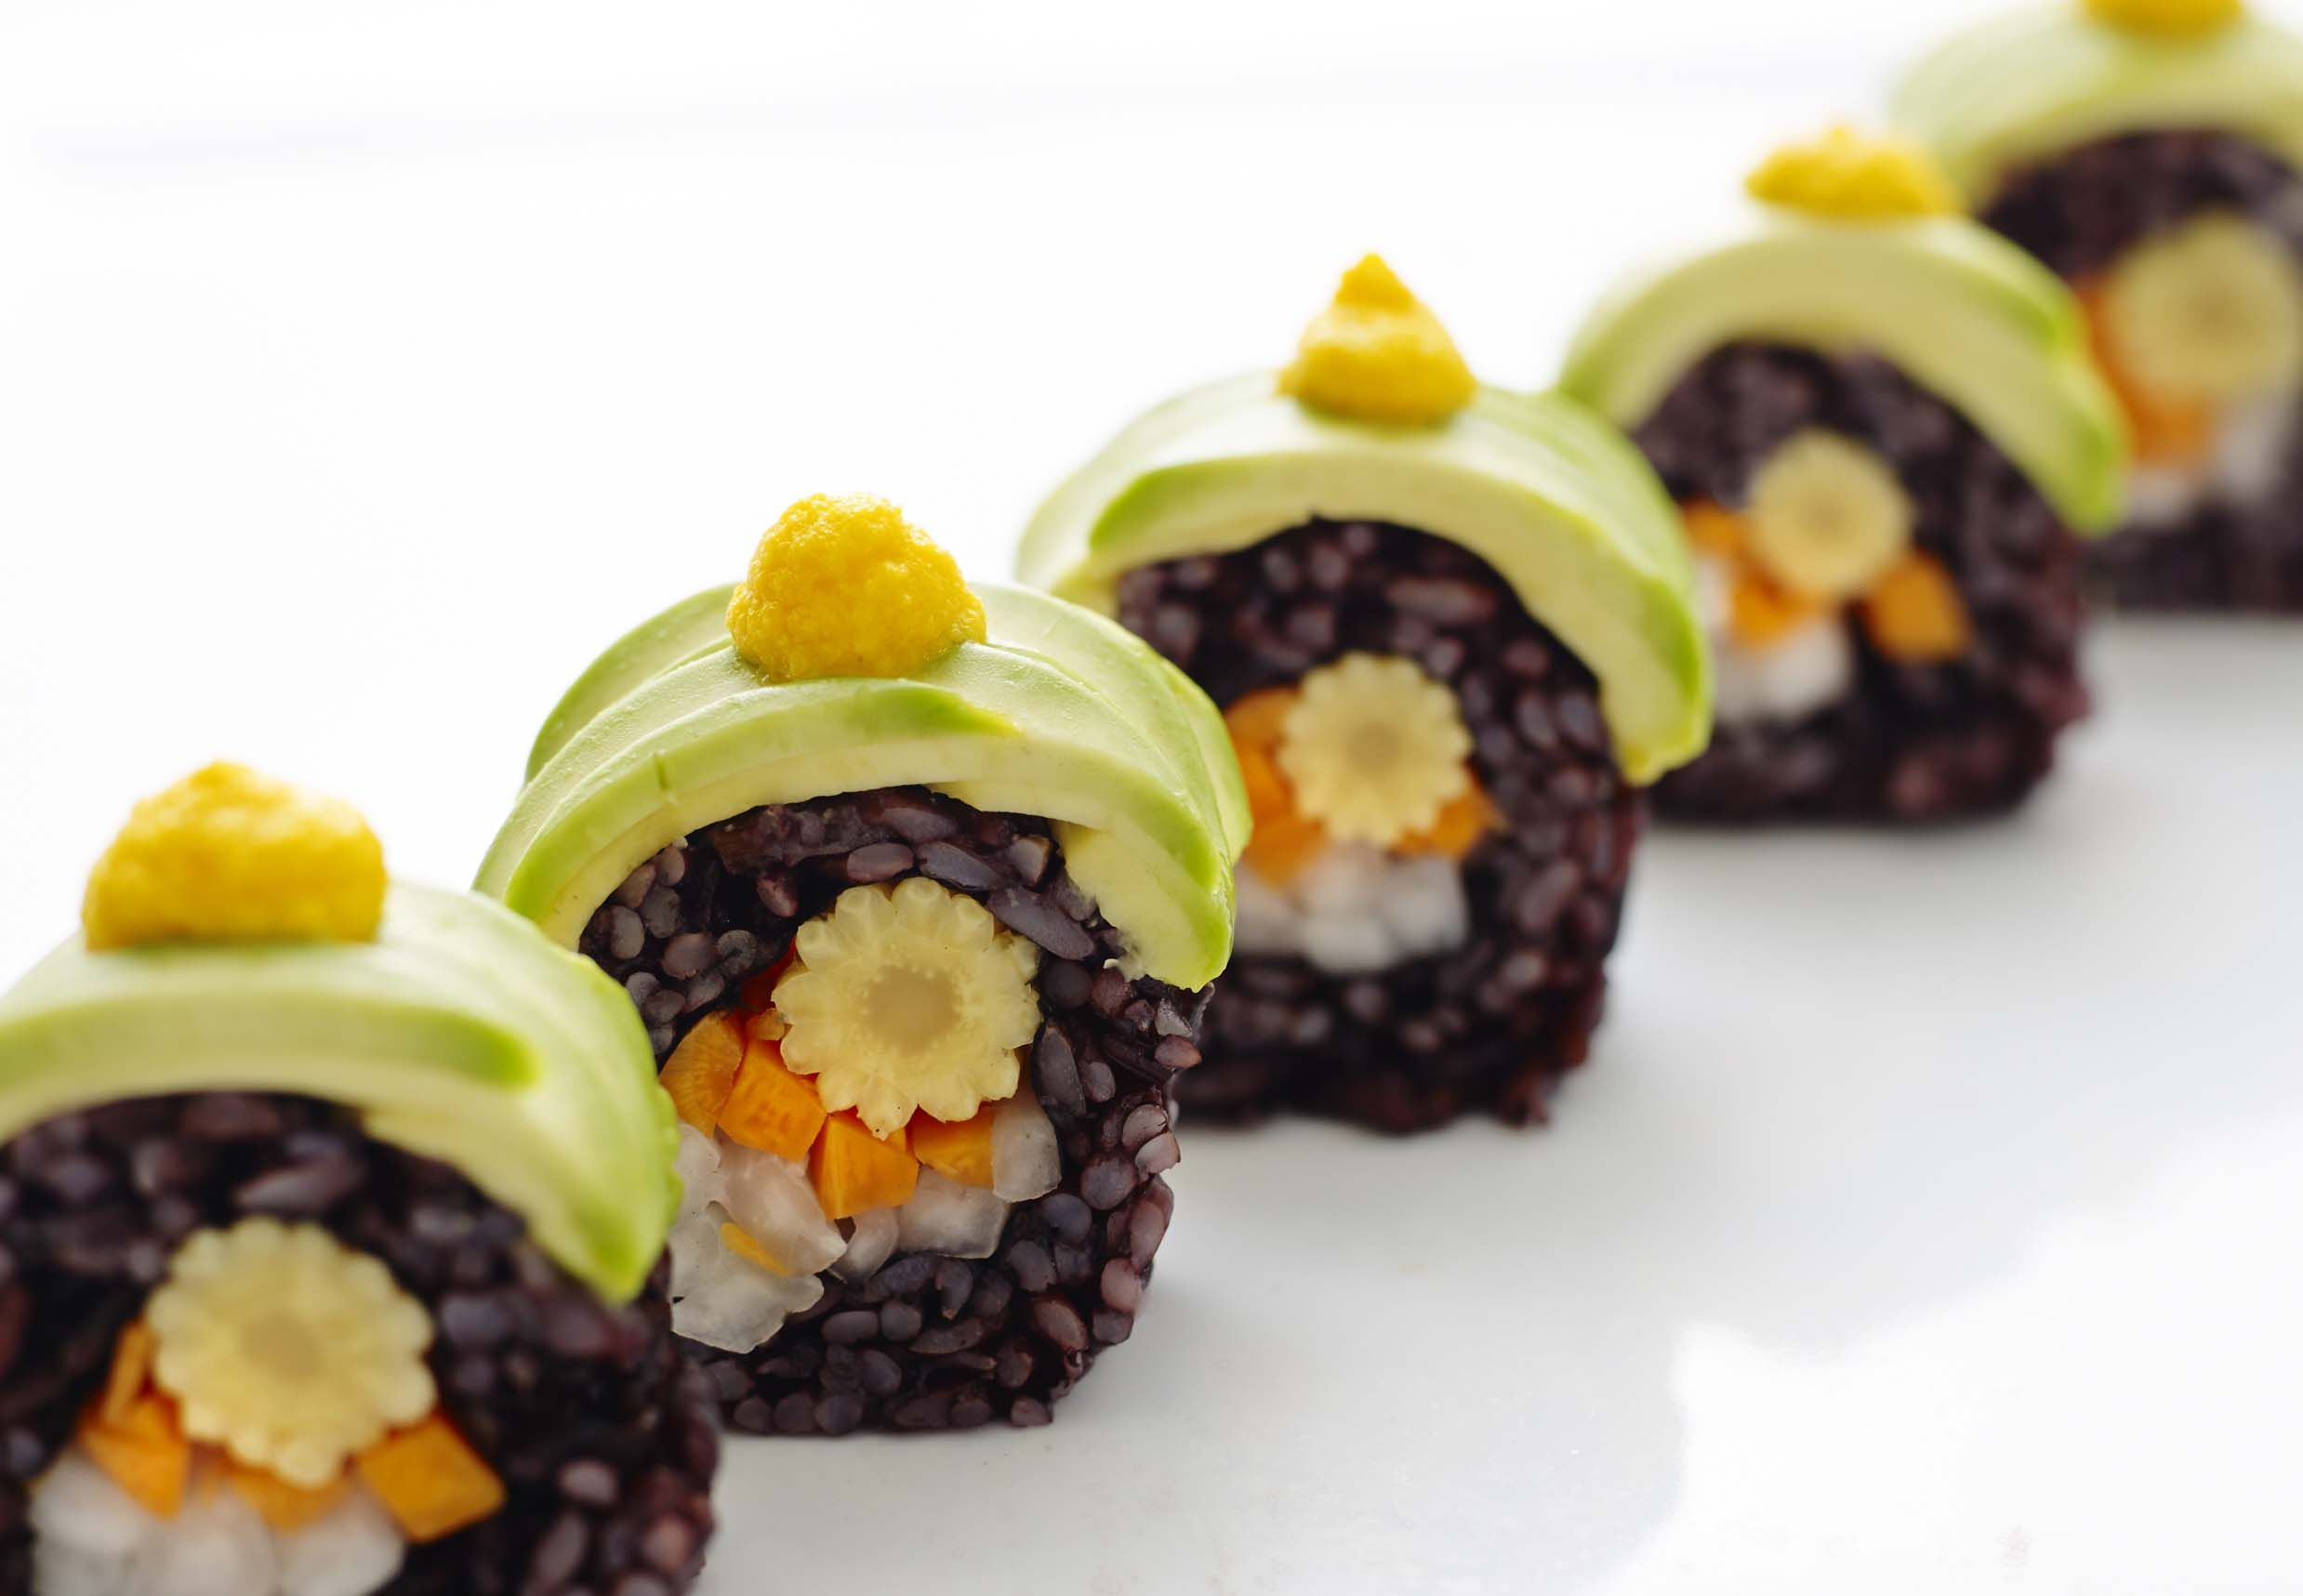 Interview with Pepe Marshall from Superfood Sushi